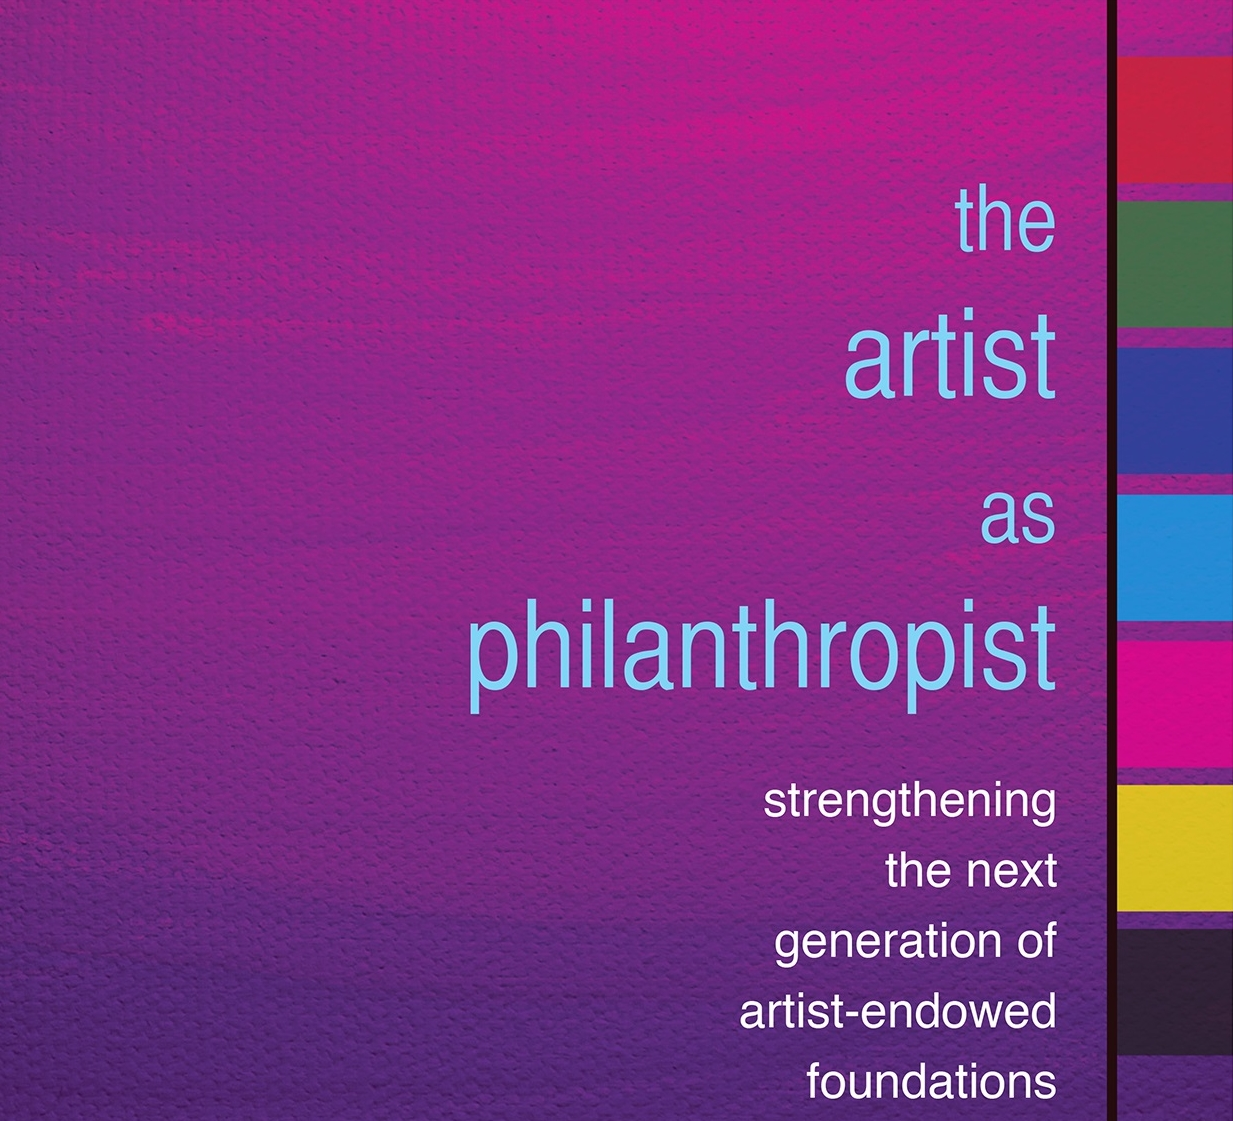 National Study of Artist-Endowed Foundations